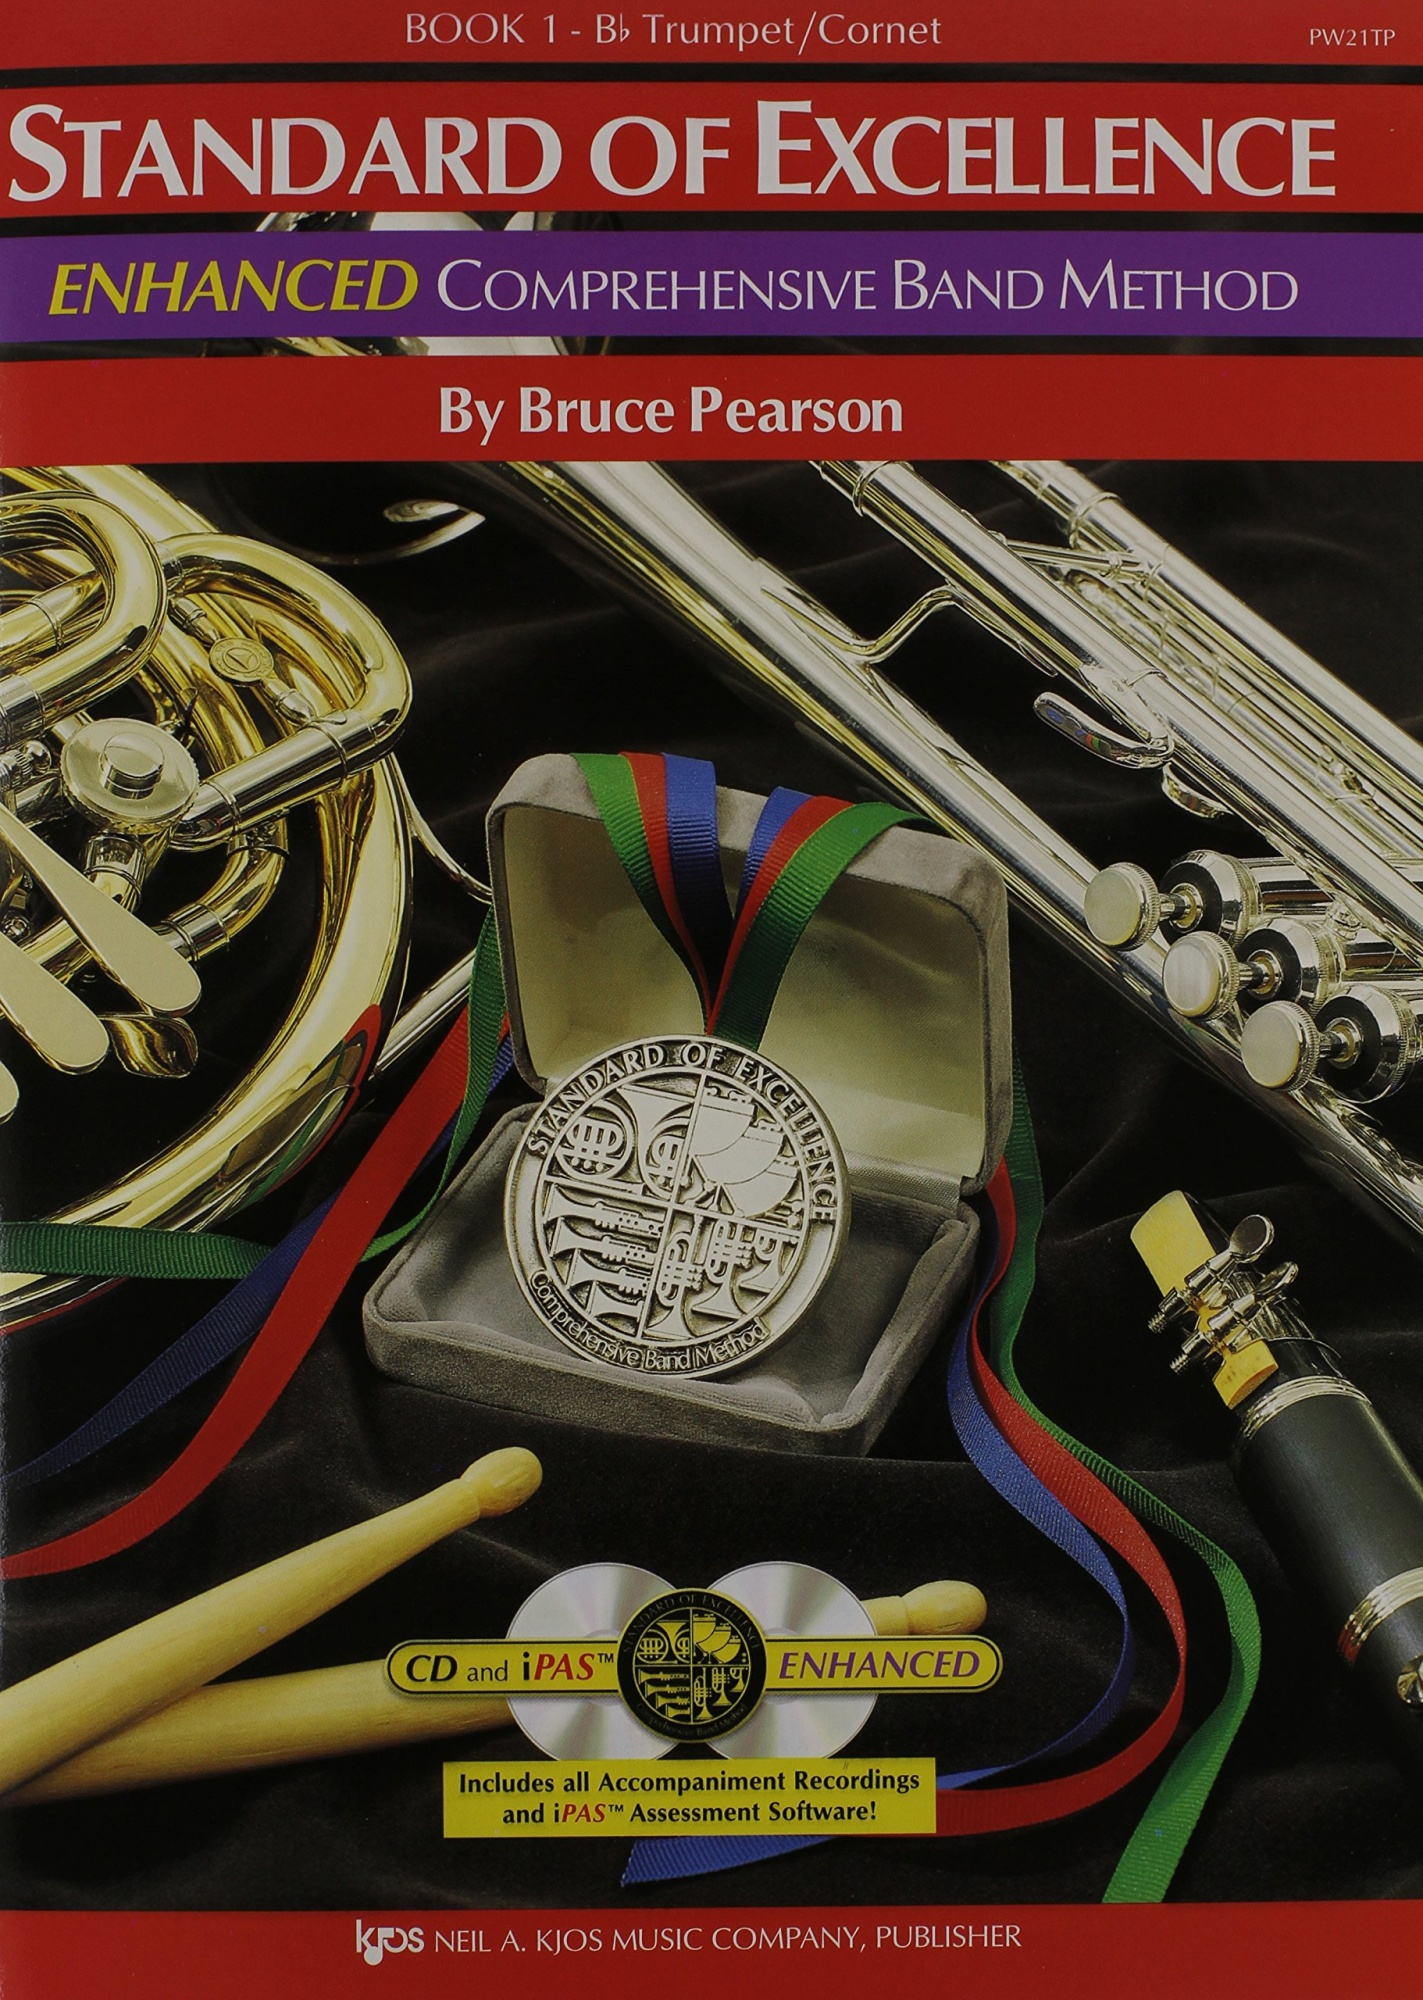 PW21TP - Standard of Excellence Enhanced Book 1 Trumpet/Cornet